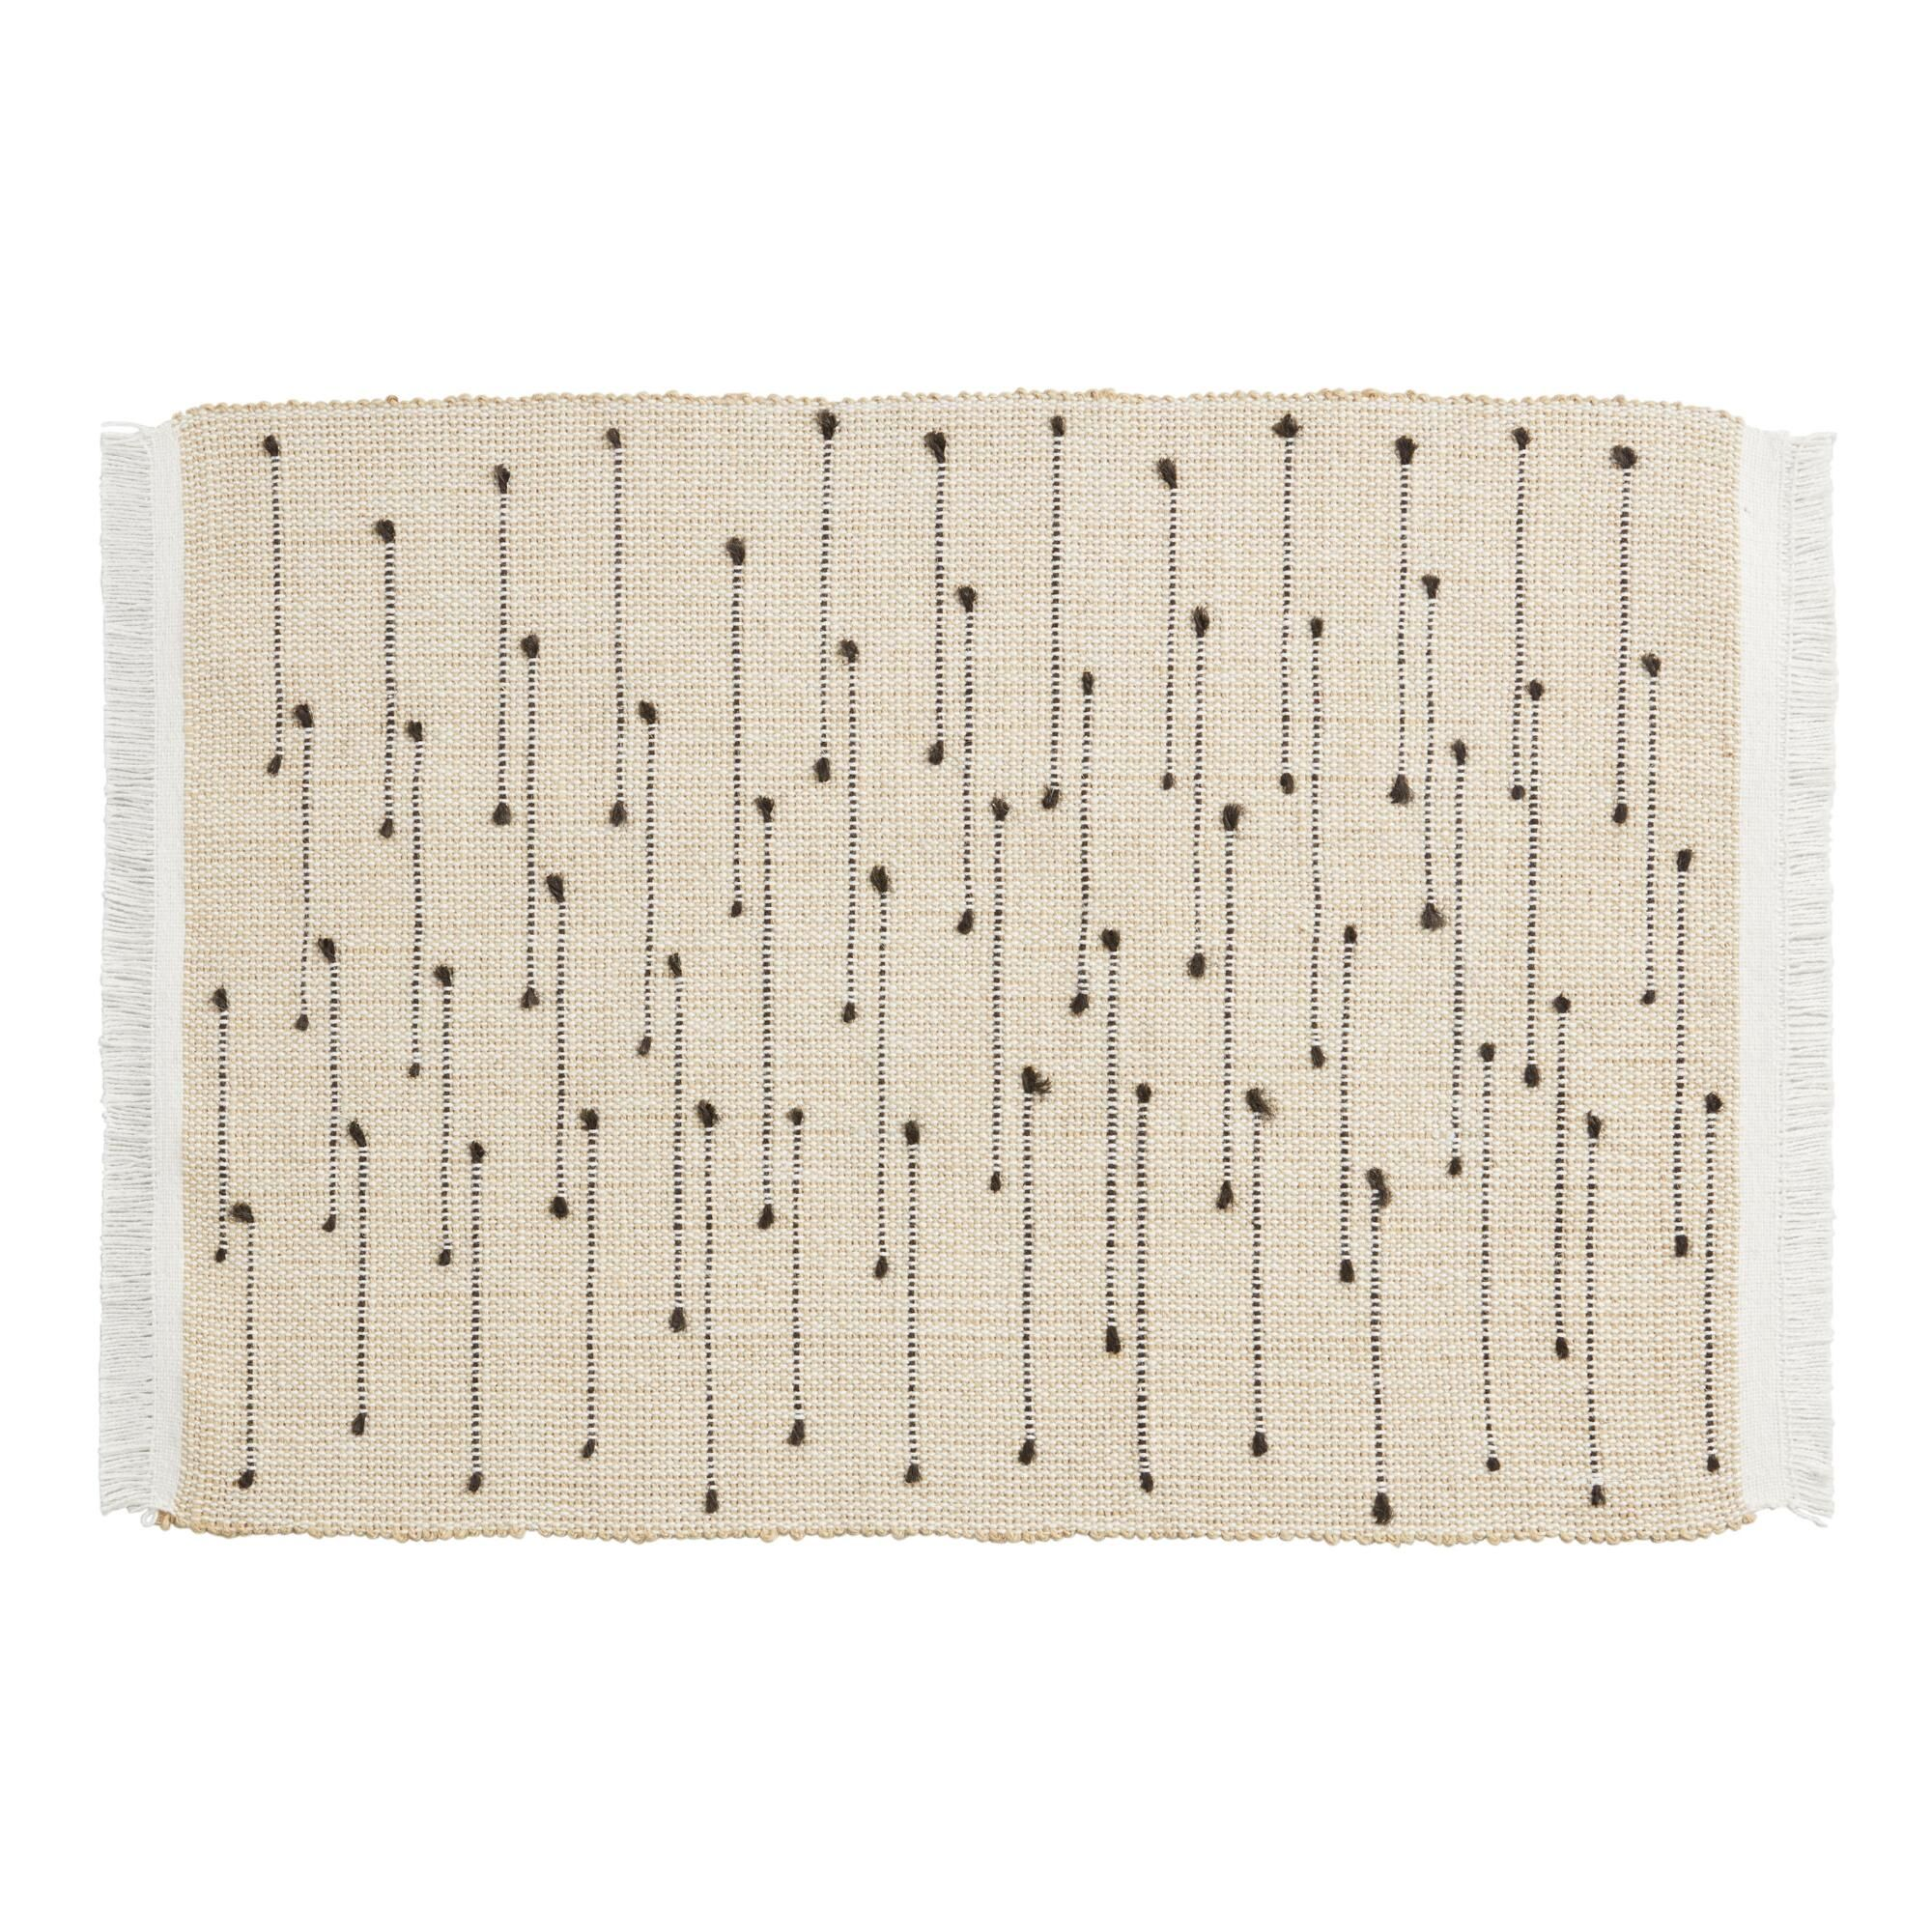 Black Dot Arusha Placemats Set Of 4 In 2020 Placemats Black Dots Linen Table Settings